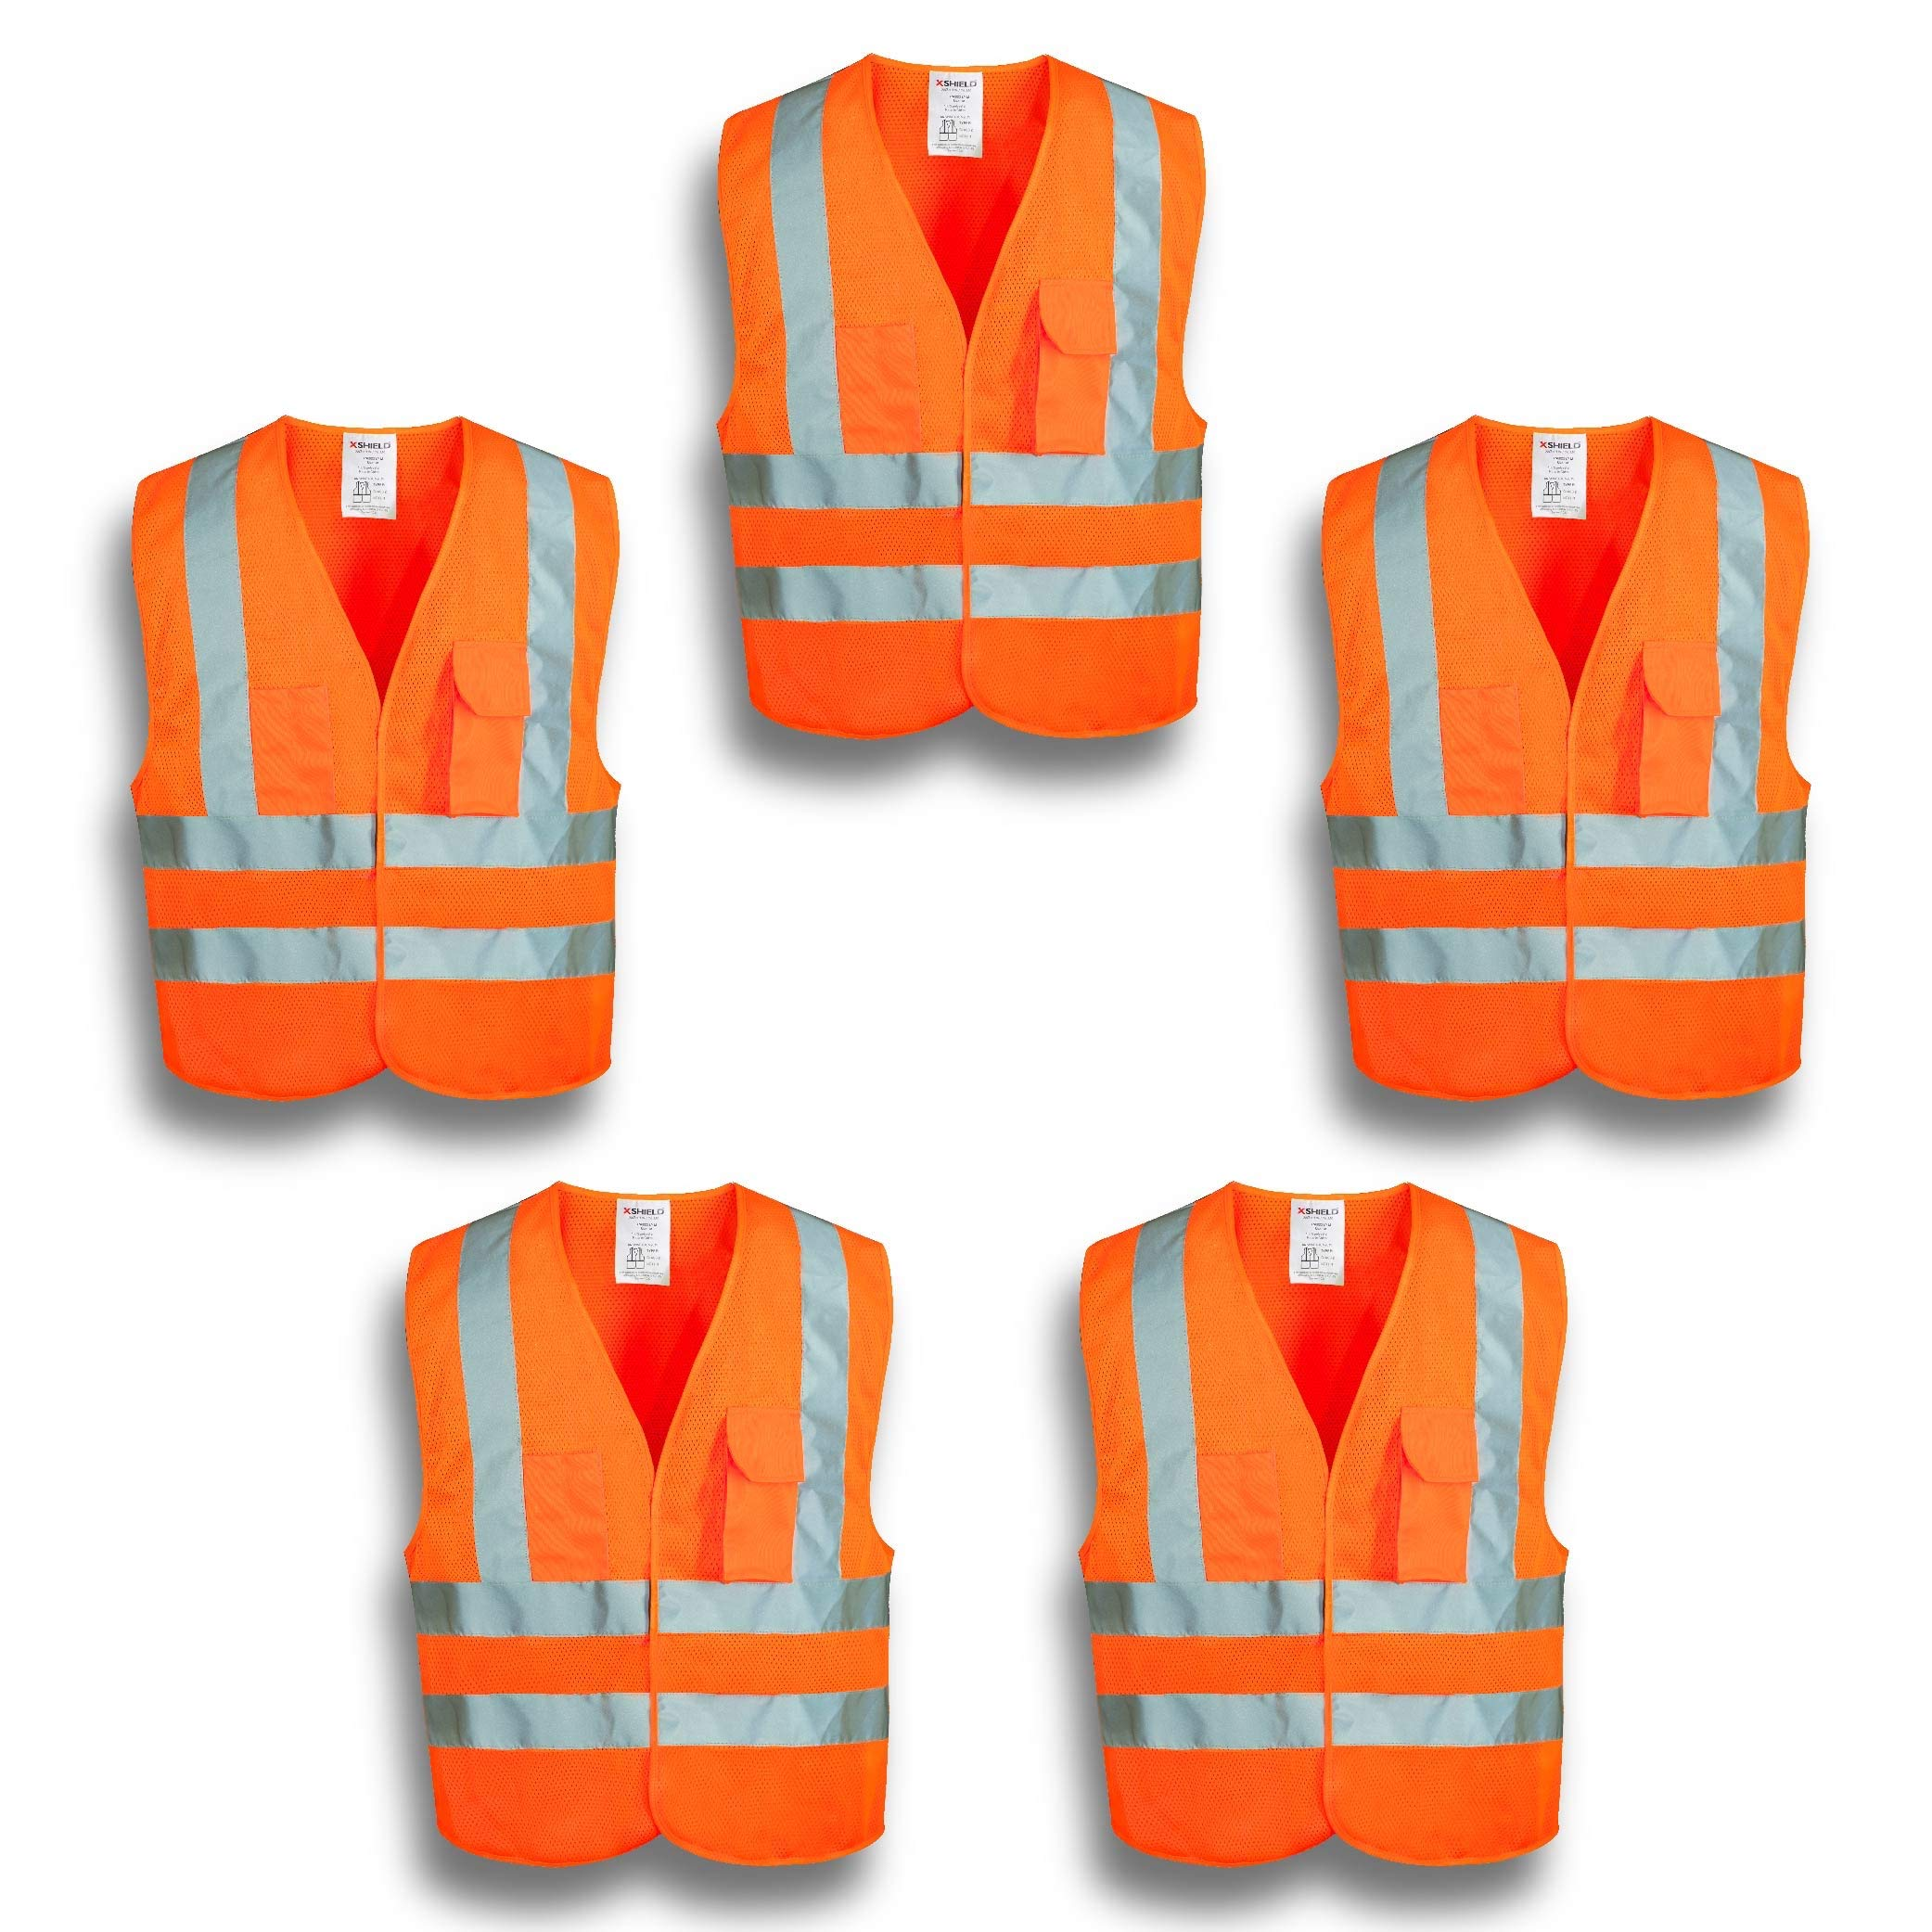 XSHIELD XS0006,High Visibility Mesh Safety Vest with Silver Stripe,ANSI/ISEA 107-2015 Type R Class2 Not FR,Pack of 5 (XL, Orange) by X-Shield (Image #1)